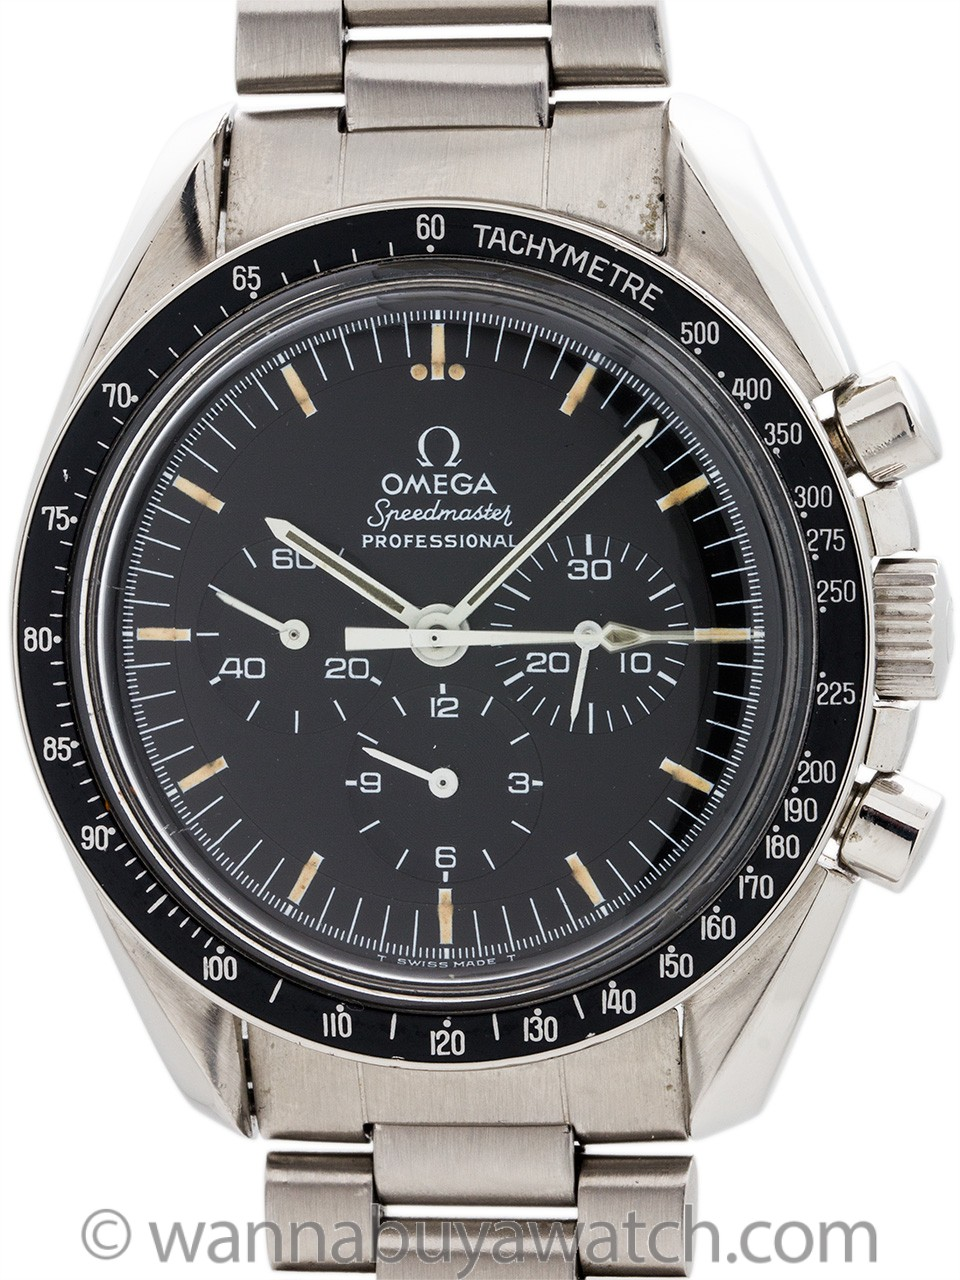 Omega Speedmaster Man on the Moon ref 145.022-71 circa 1970